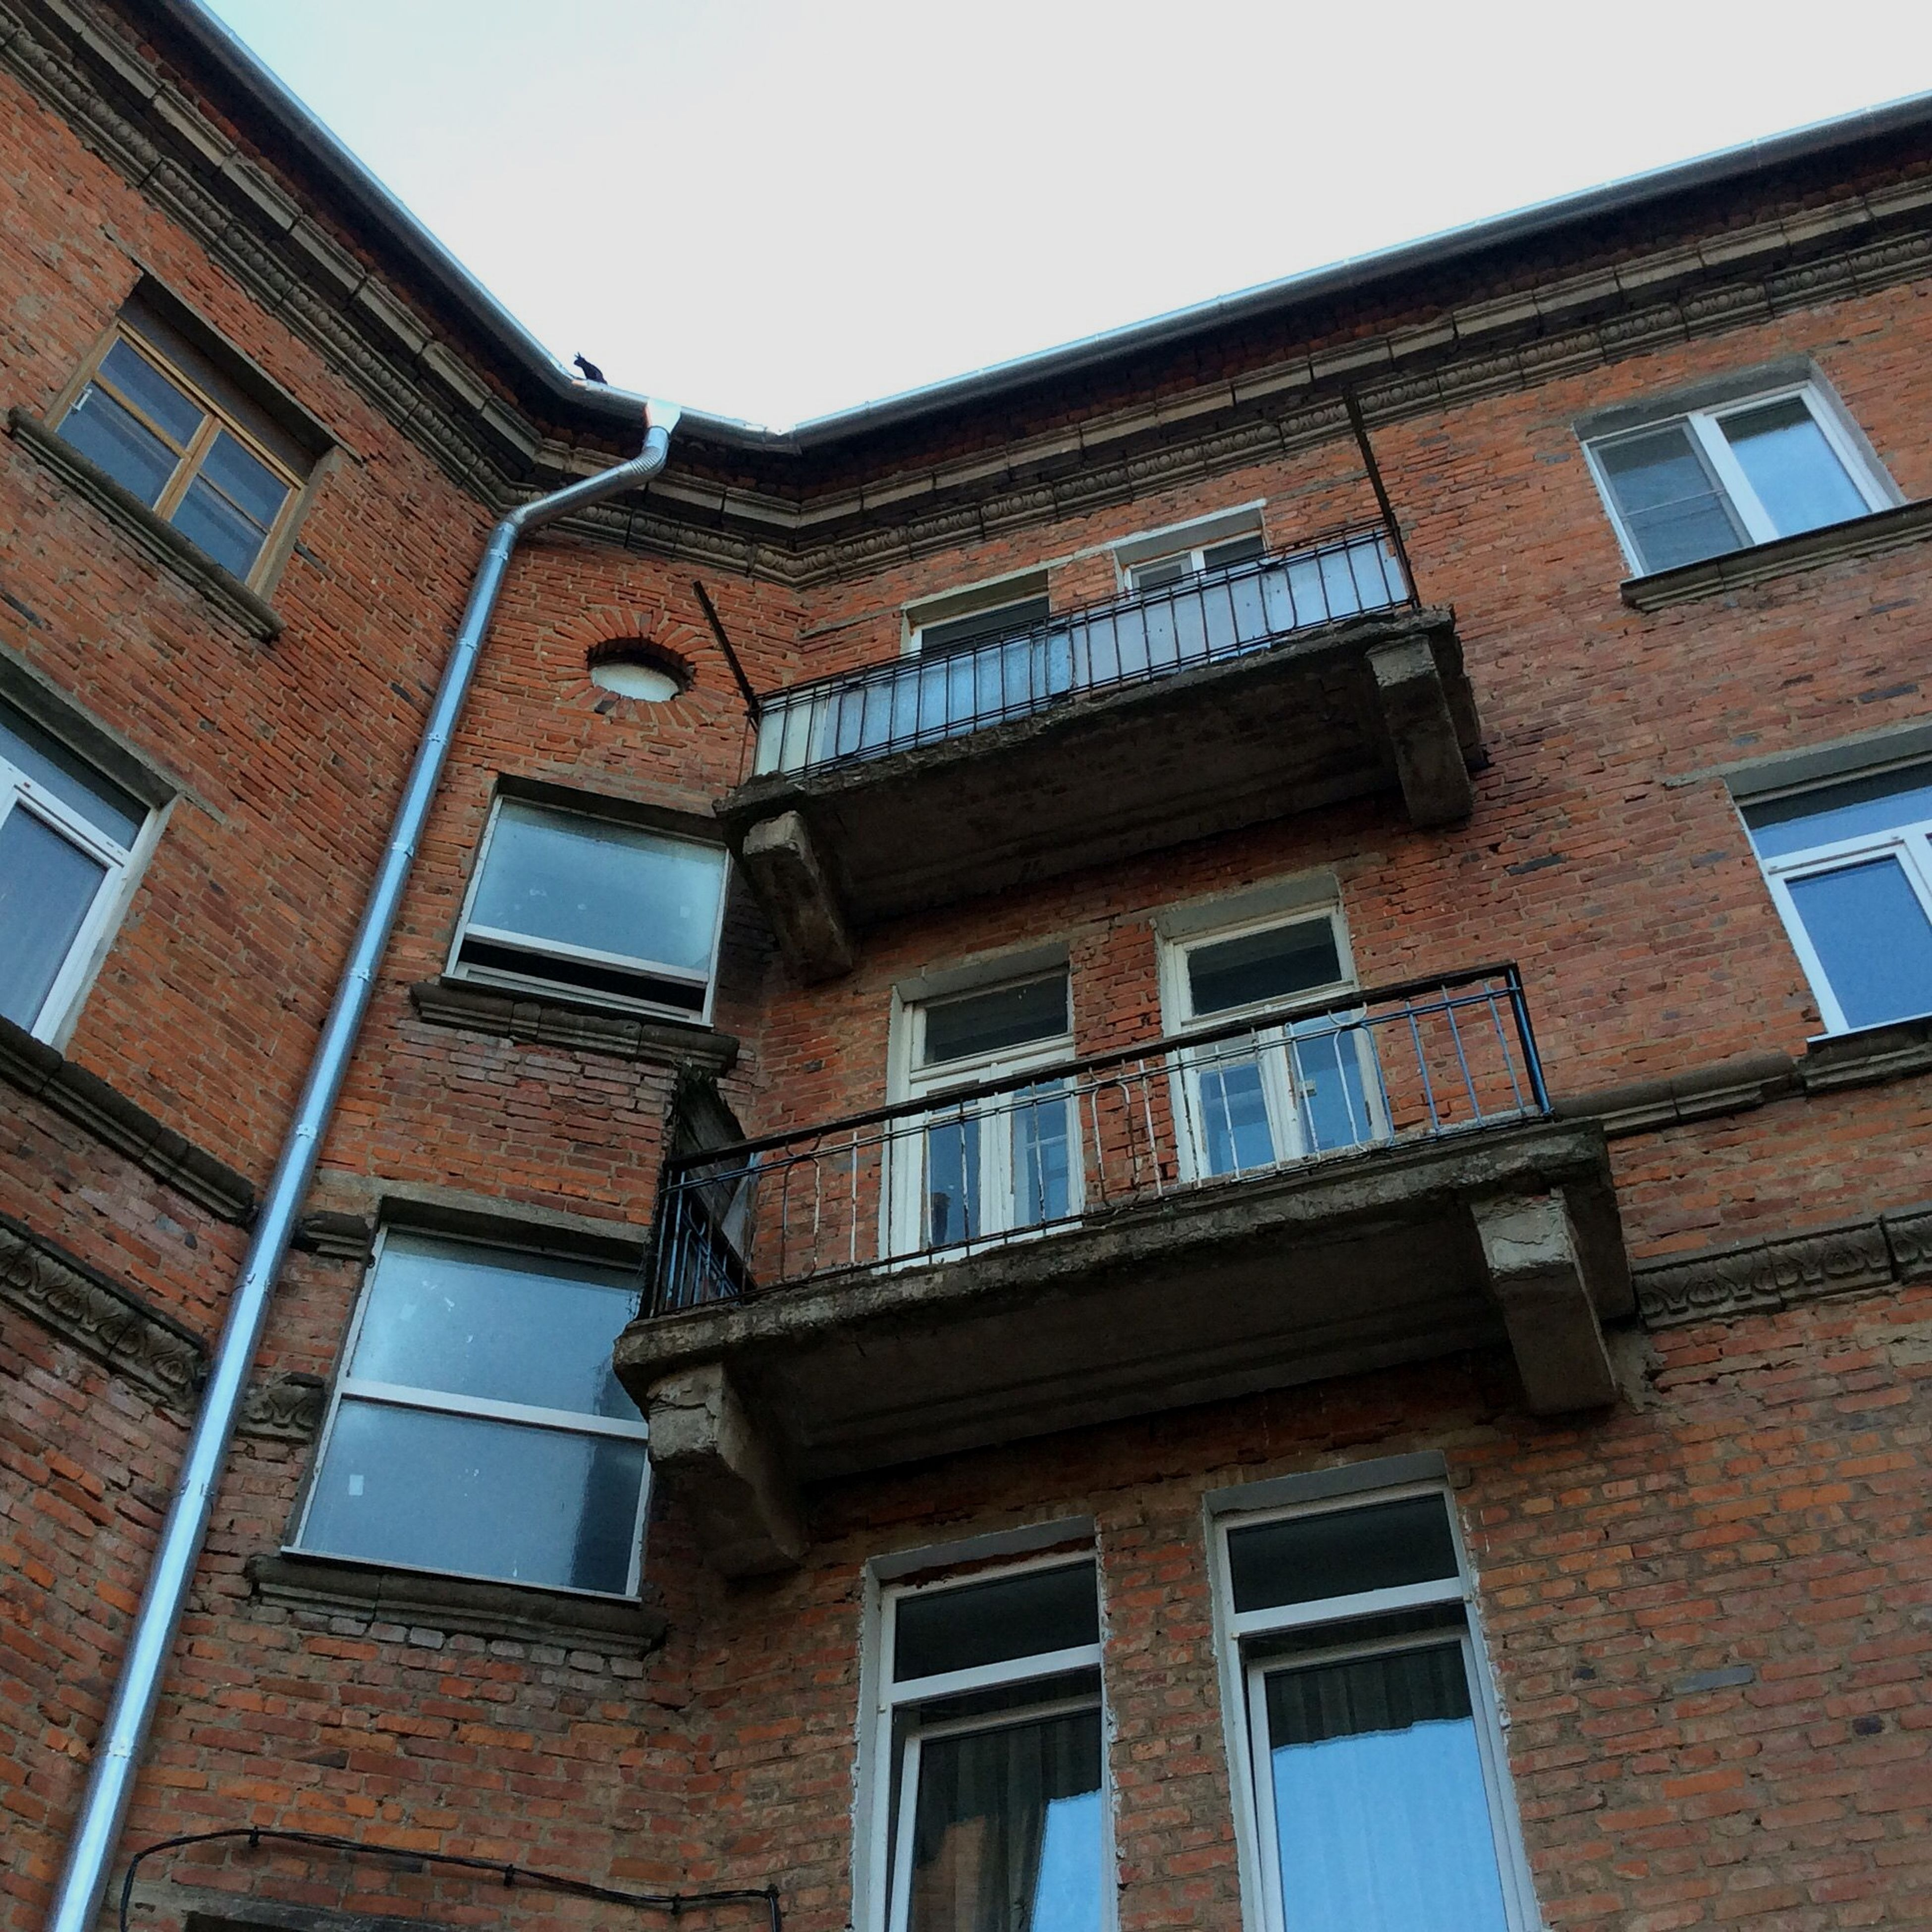 architecture, building exterior, built structure, window, low angle view, residential building, residential structure, building, house, clear sky, balcony, day, brick wall, apartment, outdoors, no people, sky, city, old, facade